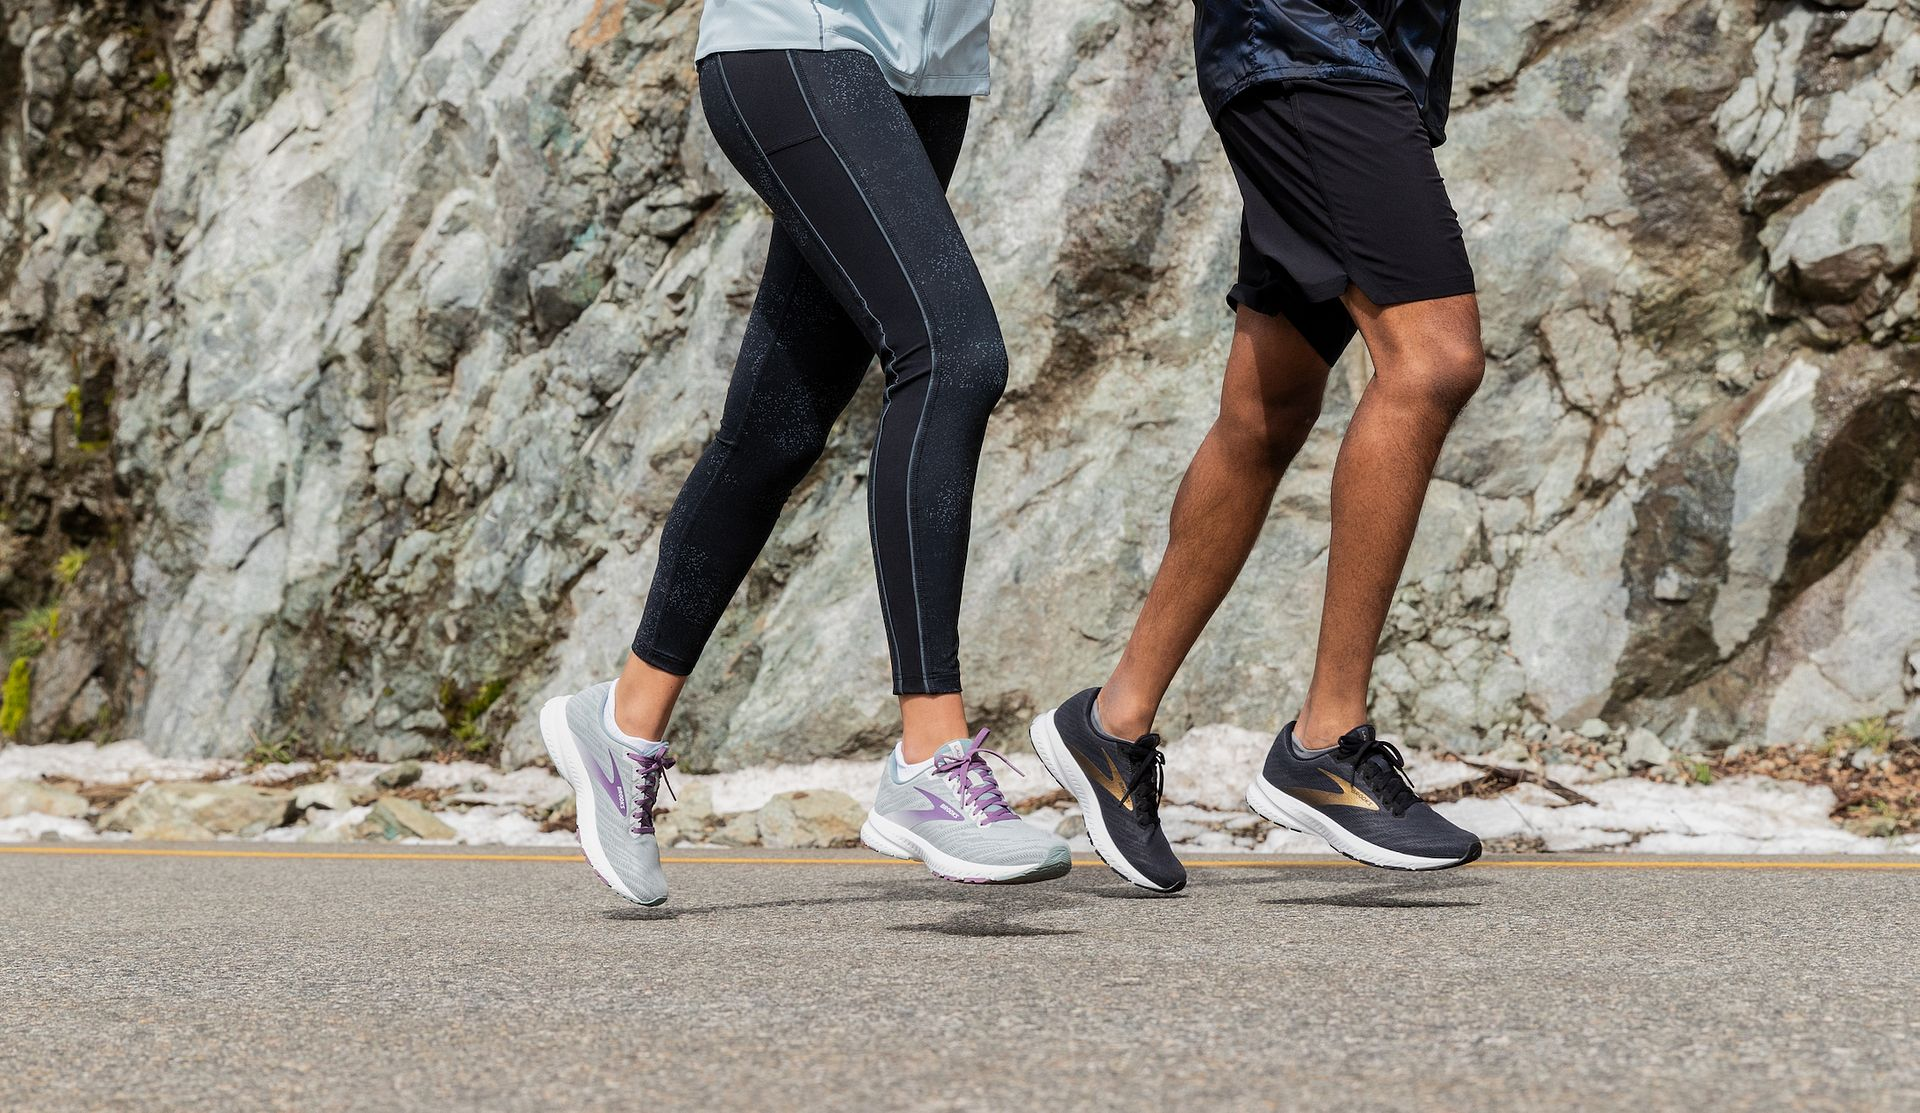 Two runners wearing the Brooks Launch 7 during a run